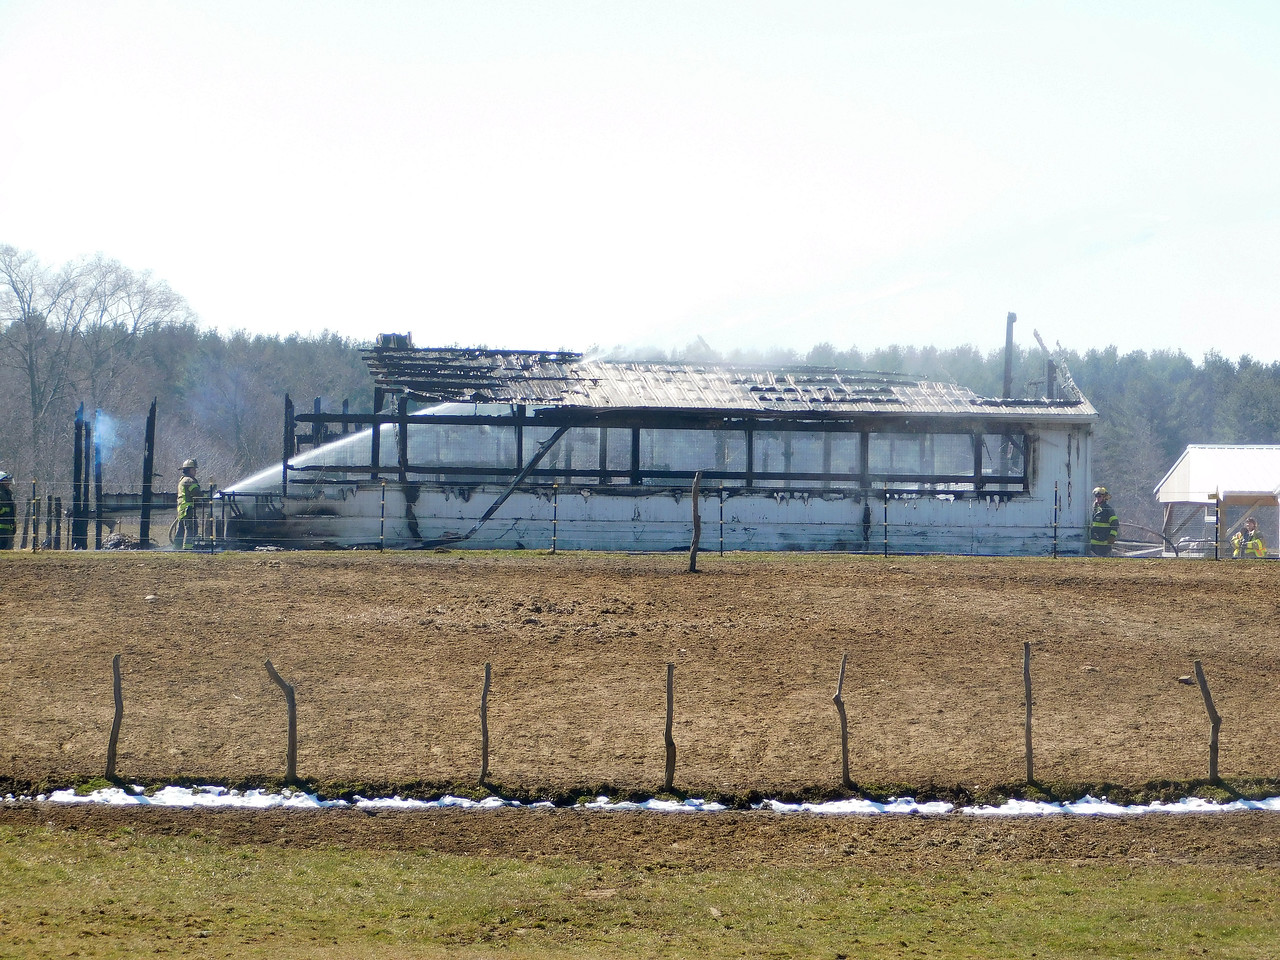 NATHAN HAVENNER / GAZETTE Thirteen cattle died in a barn fire Monday morning at Mennell Acres in Chatham Township.